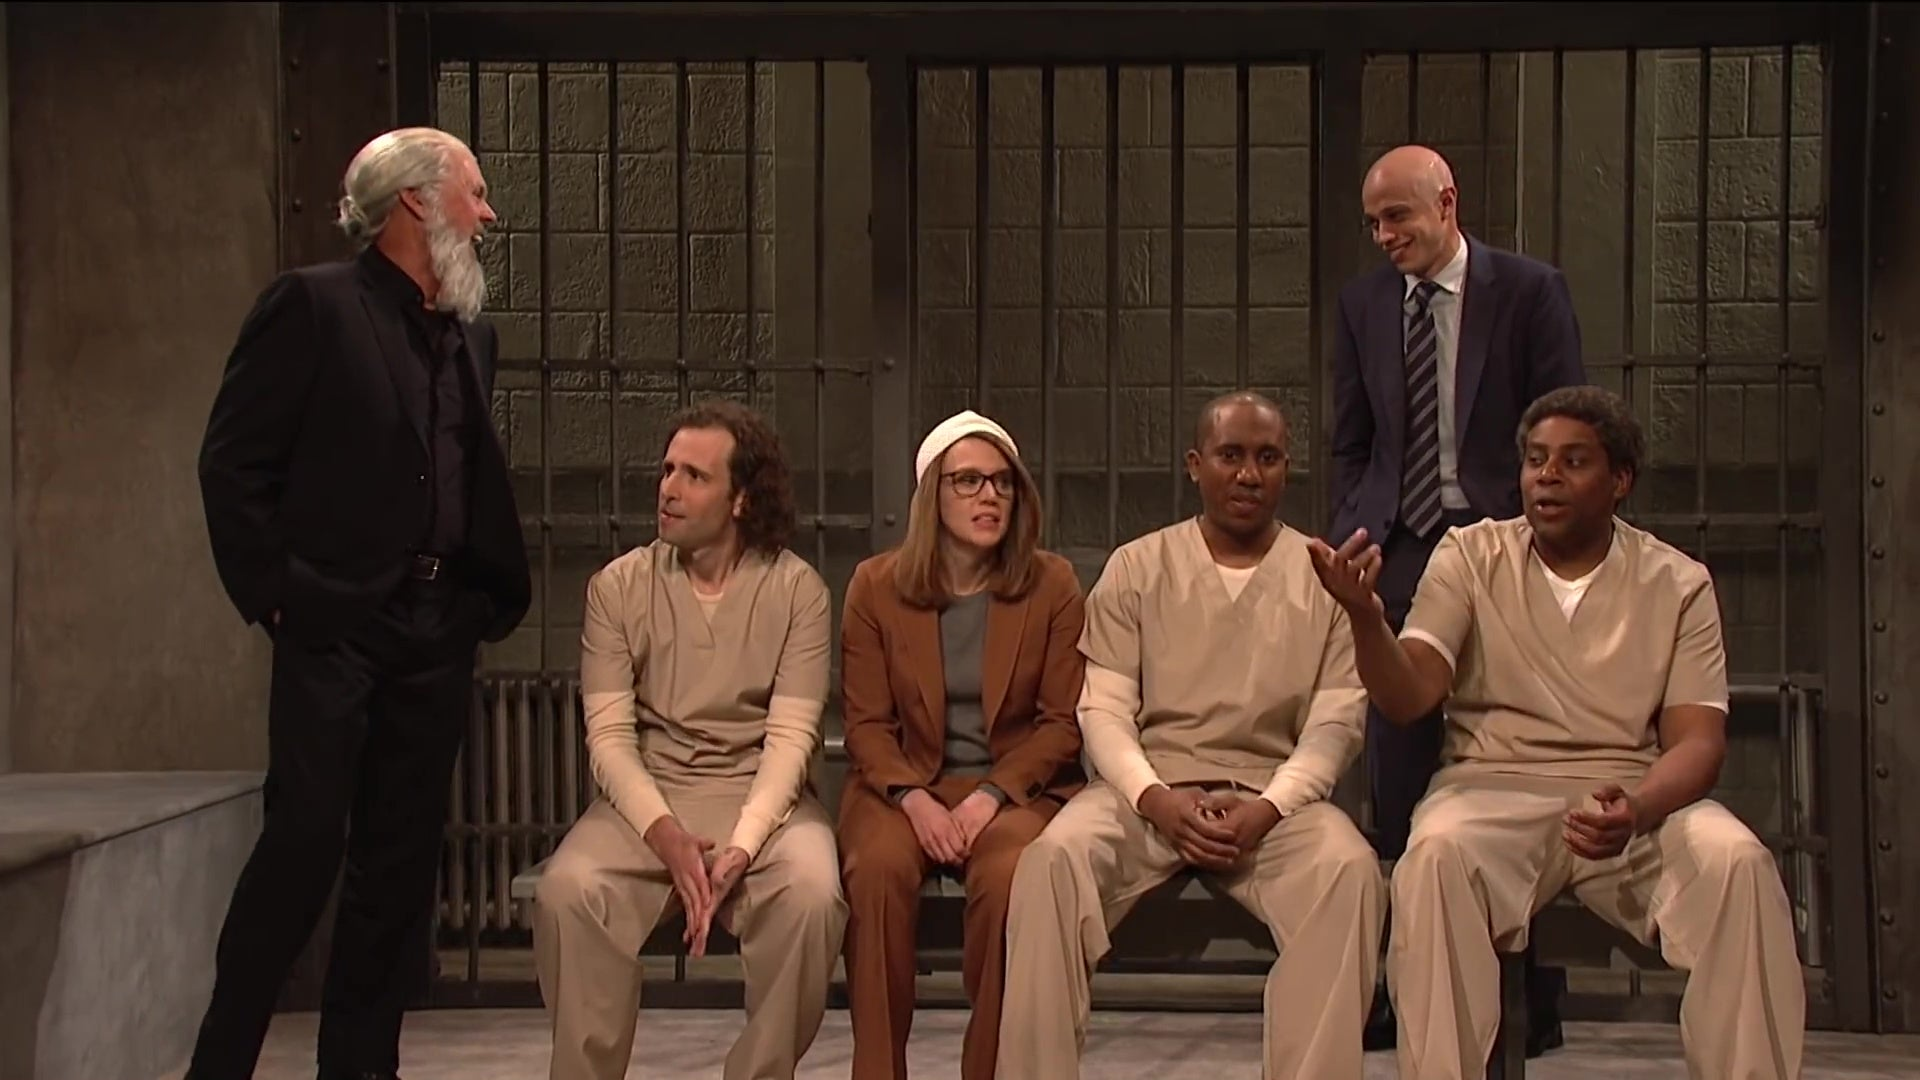 Michael Keaton, as Julian Assange, brags to Kate McKinnon's Lori Loughlin, Pete Davidson's Michael Avenatti, and inmates played by Kyle Mooney, Chris Redd, and Kenan Thompson in a still from SNL.